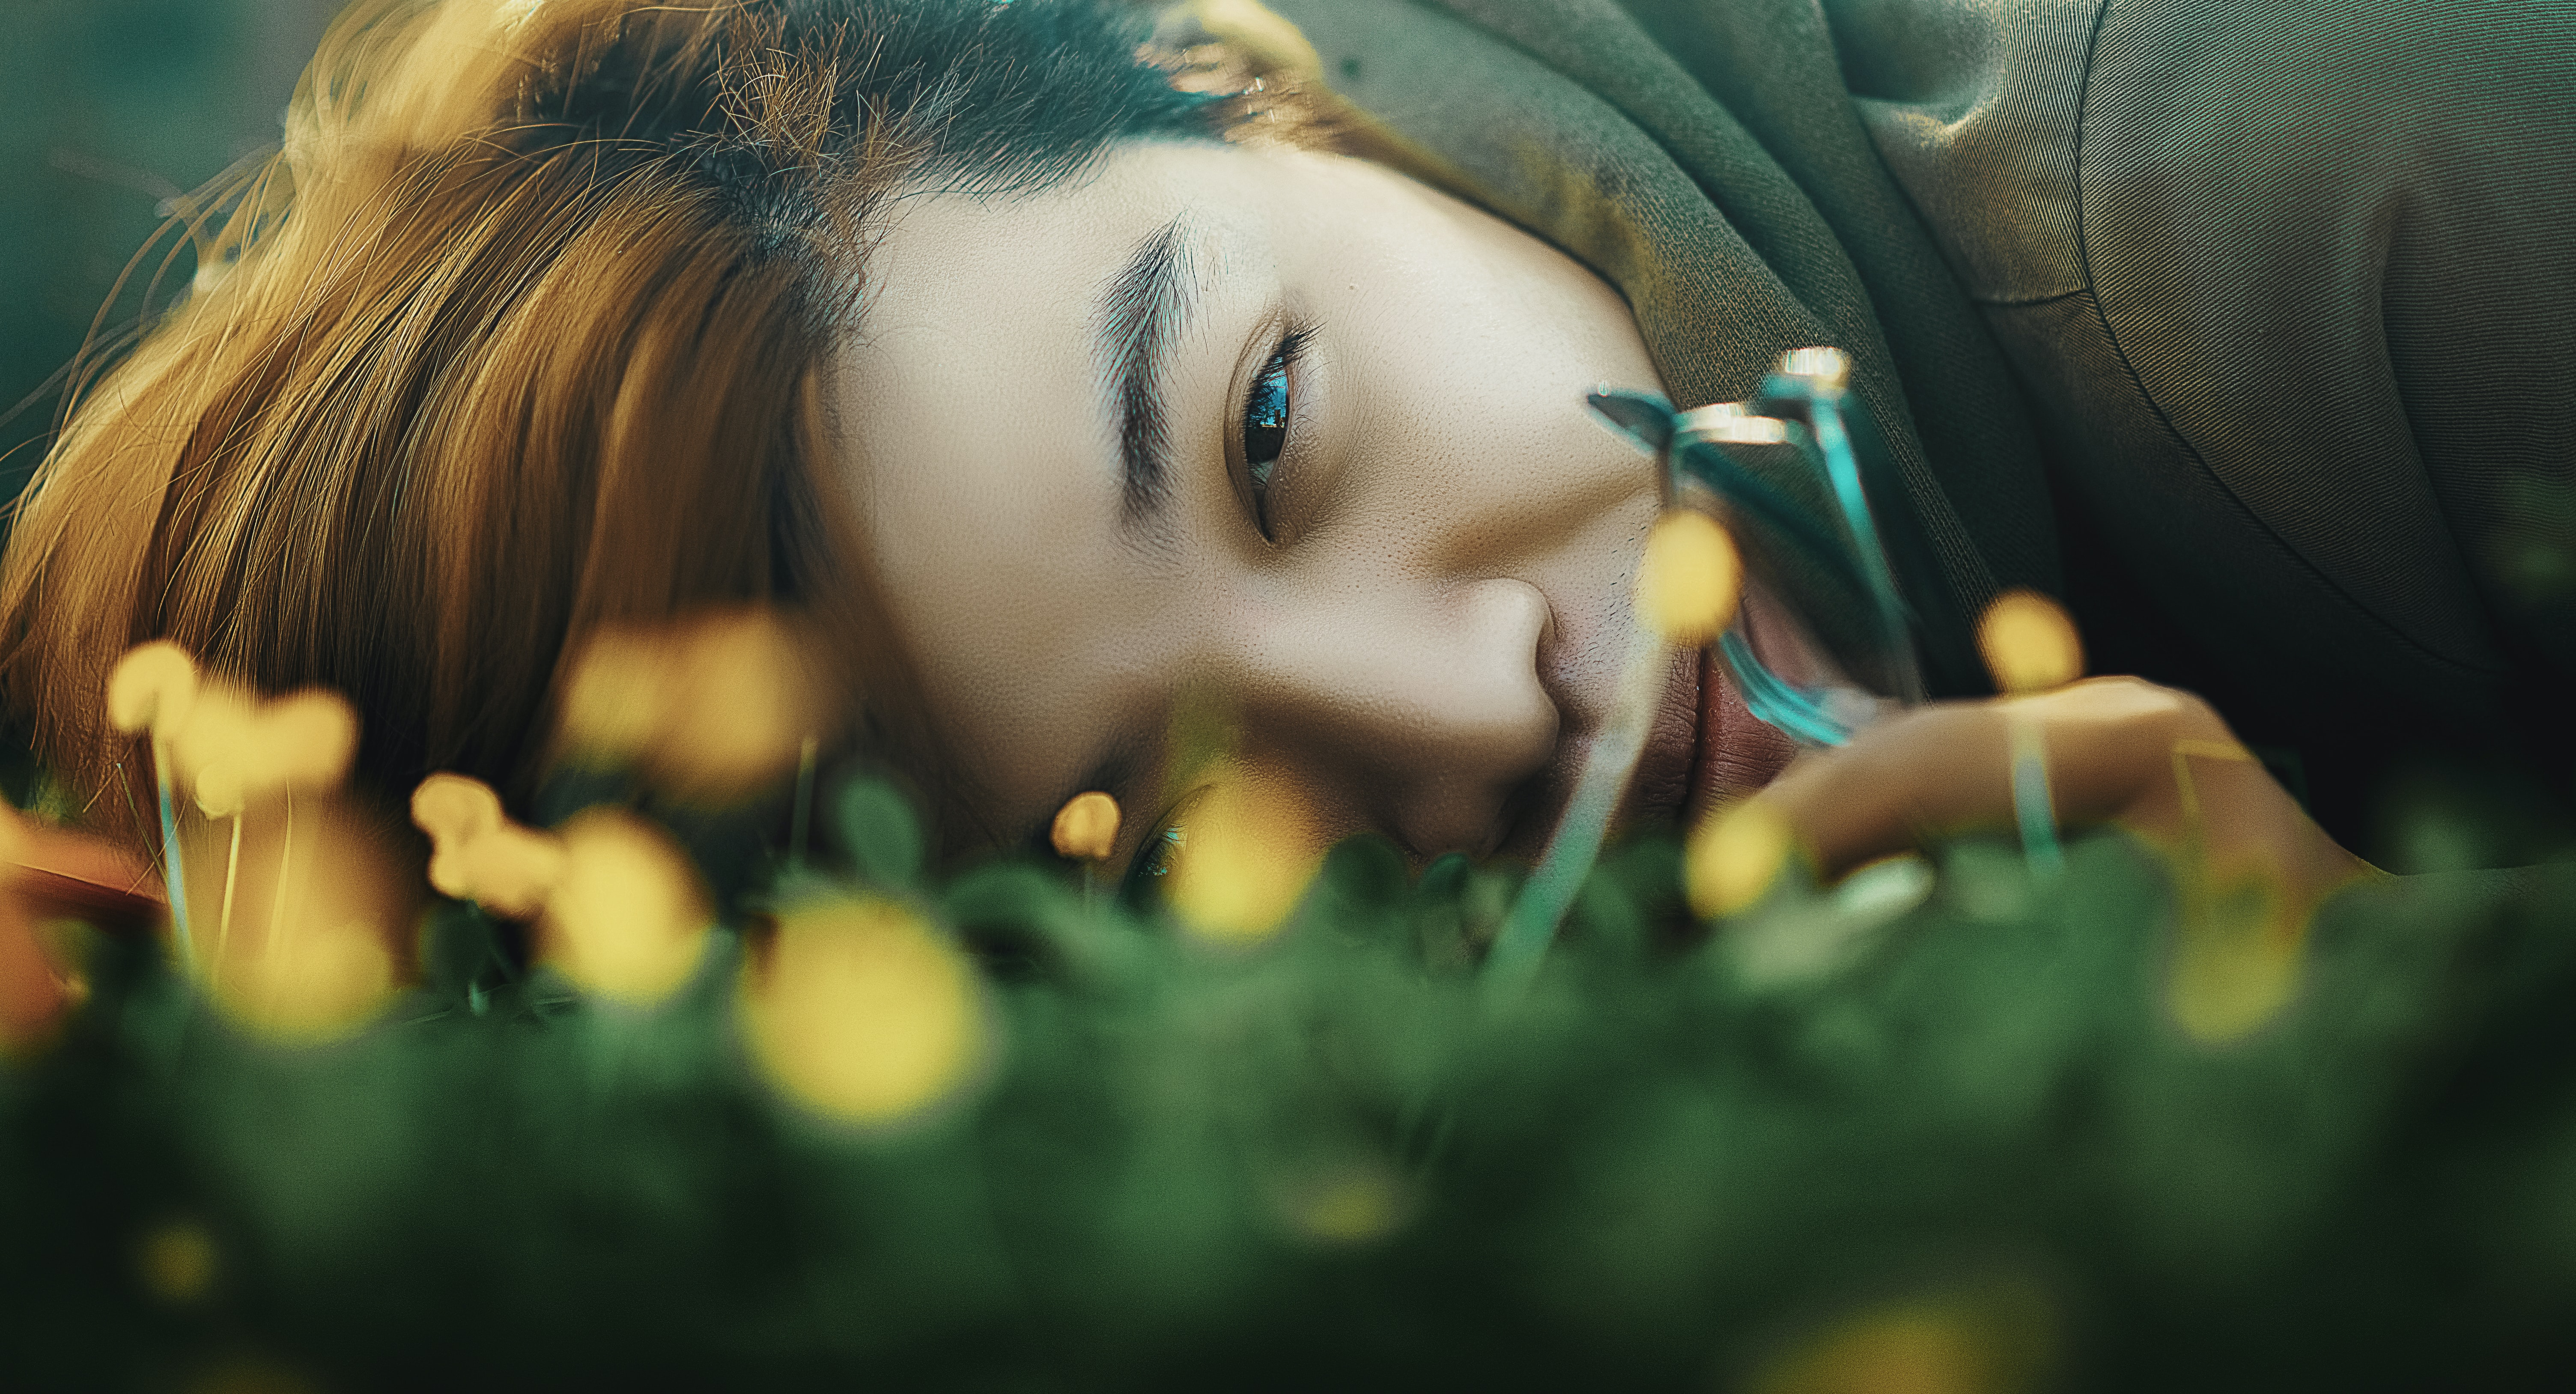 An Asian man lying on the ground looking at the camera.